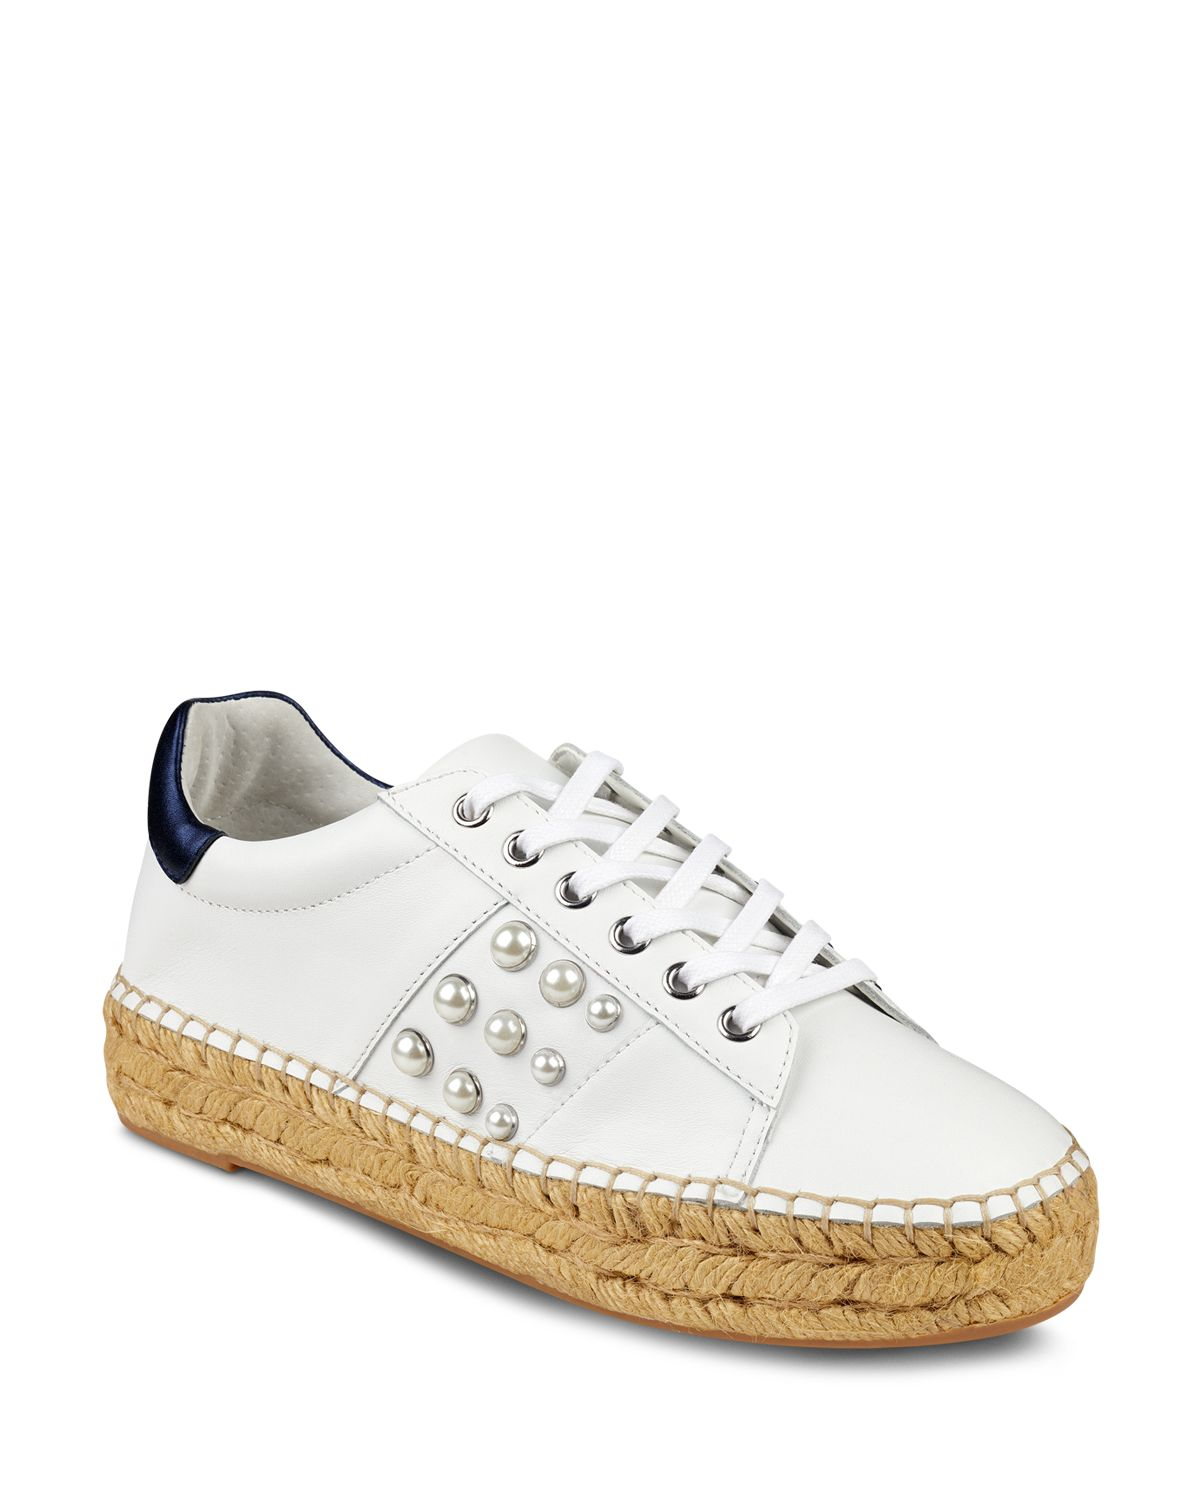 MARC FISHER Women's Marge Leather Lace-Up Espadrille Sneaker